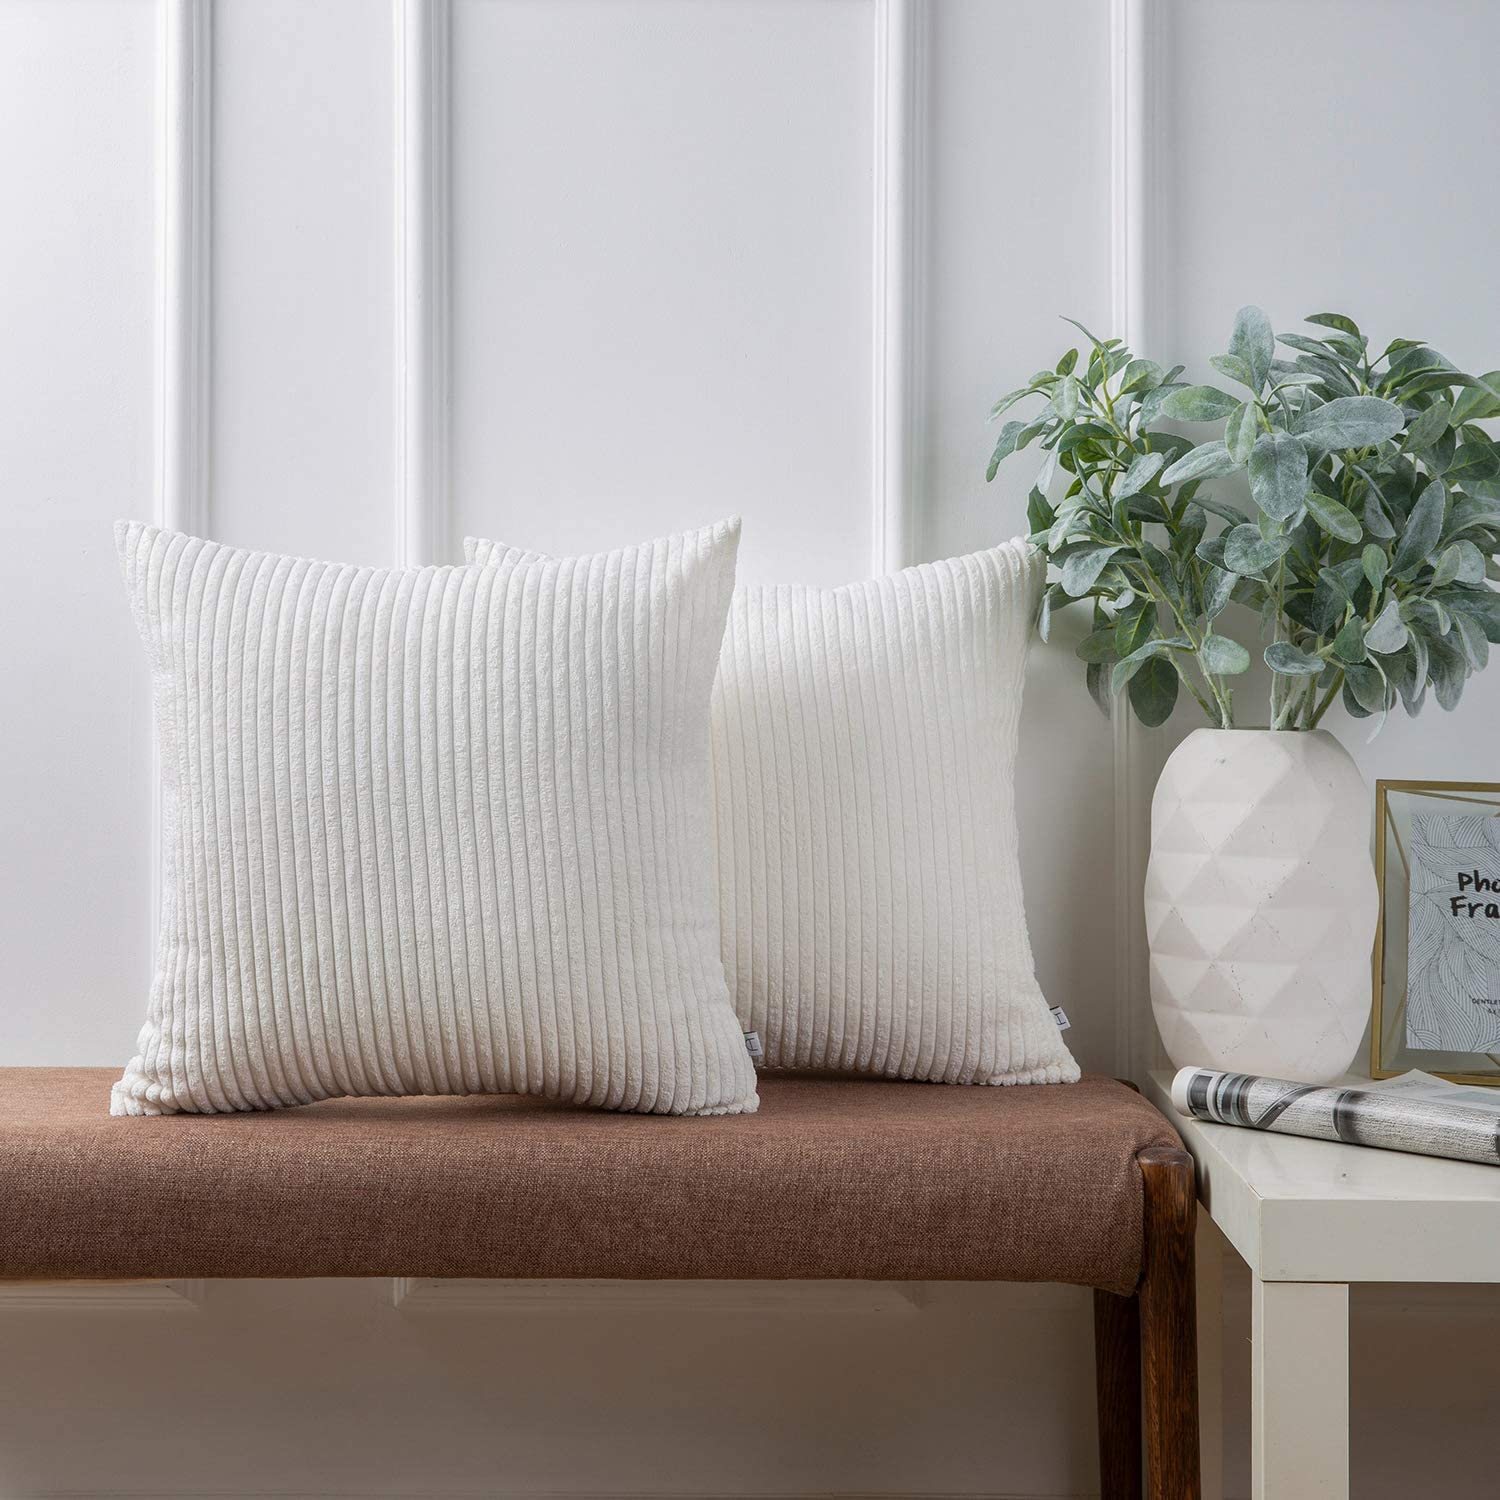 Ashler Pack of 2 Corduroy Soft Velvet Striped Solid Square Throw Pillow Covers Cushion Cases 20 x 20 inch True White